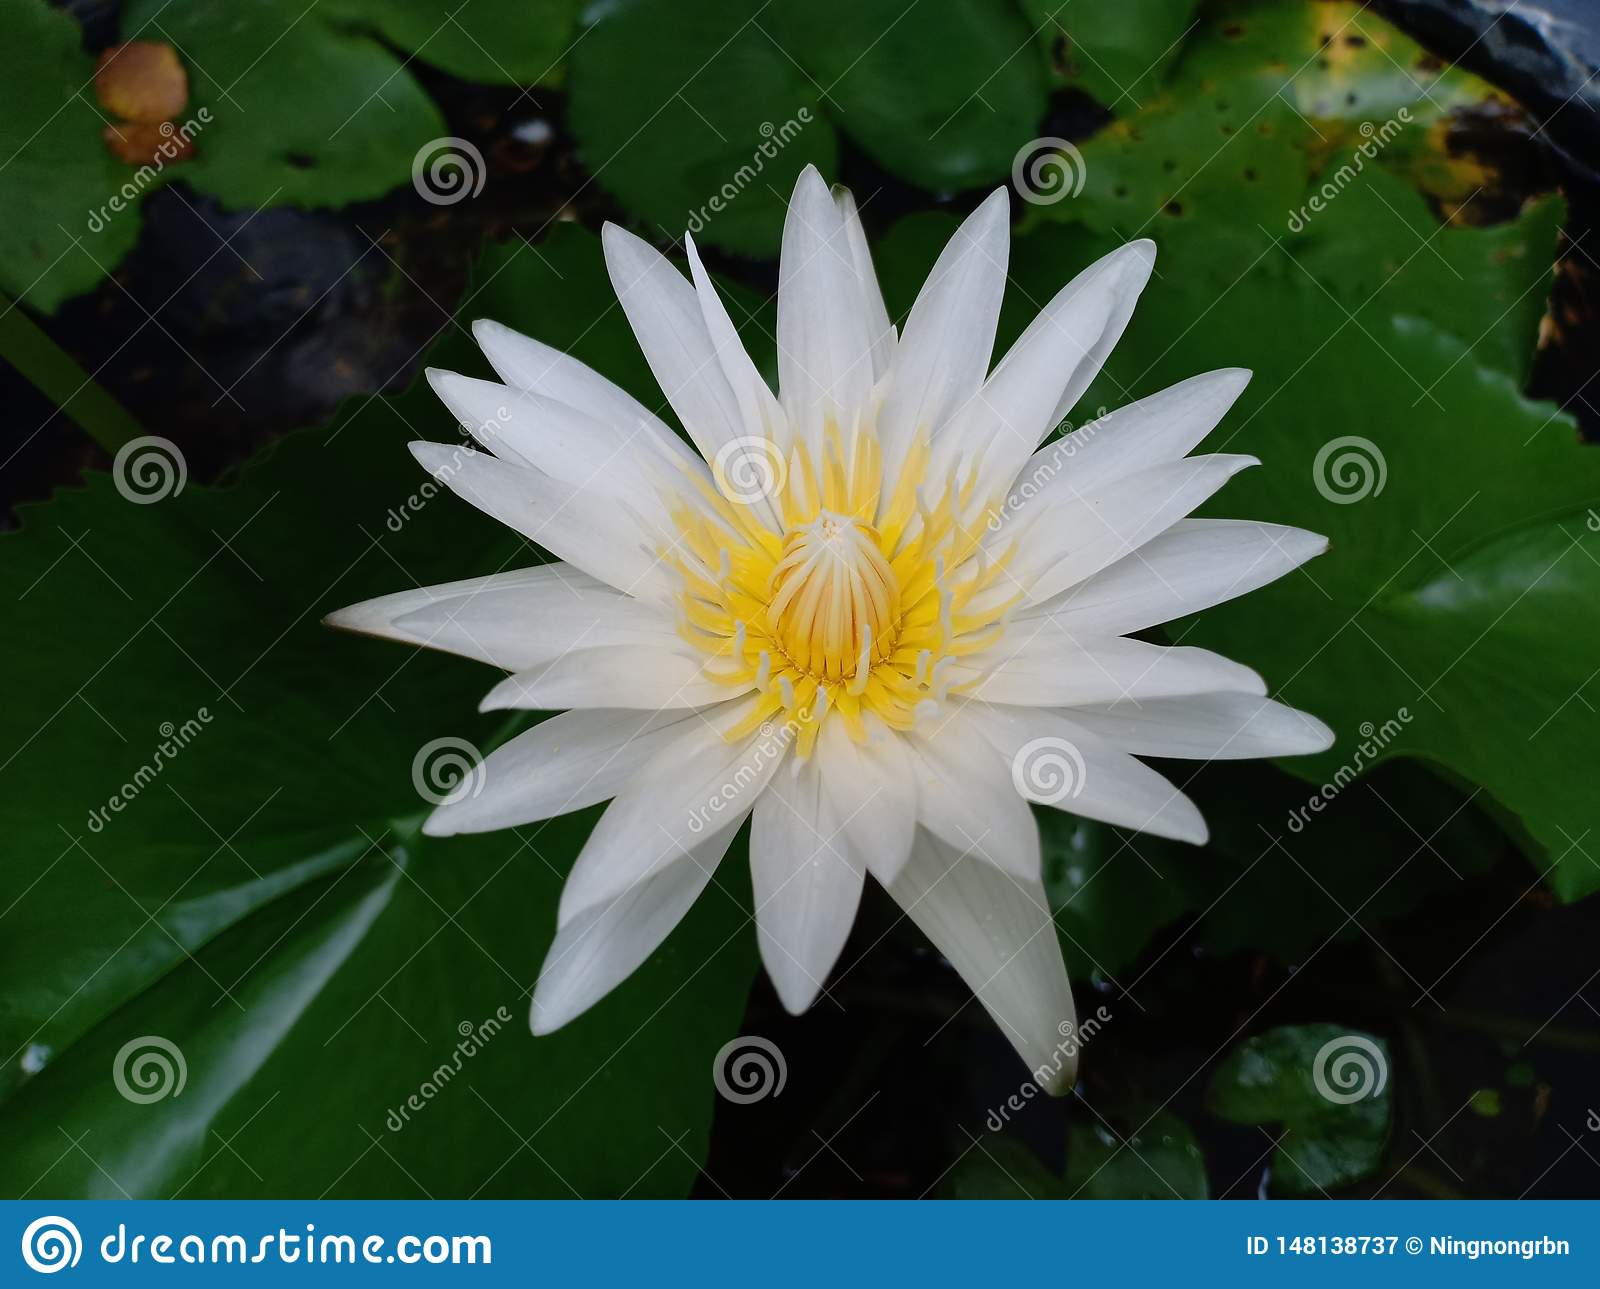 White Lotus Flower With Green Leaves Stock Image Image Of Flower